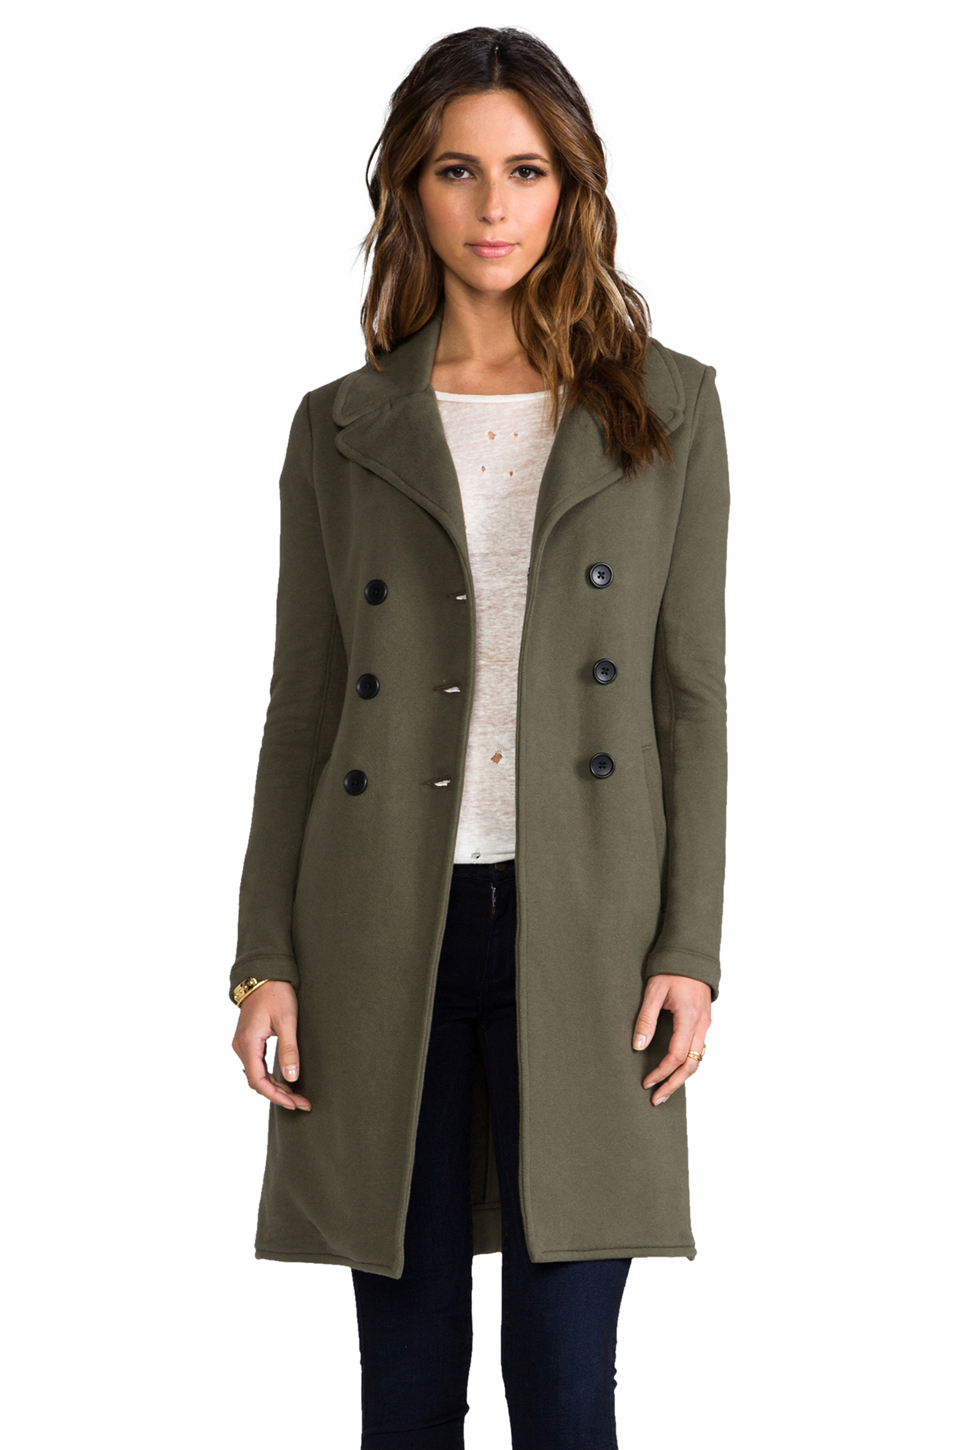 James perse Long Fleece Military Coat in Army in Green | Lyst